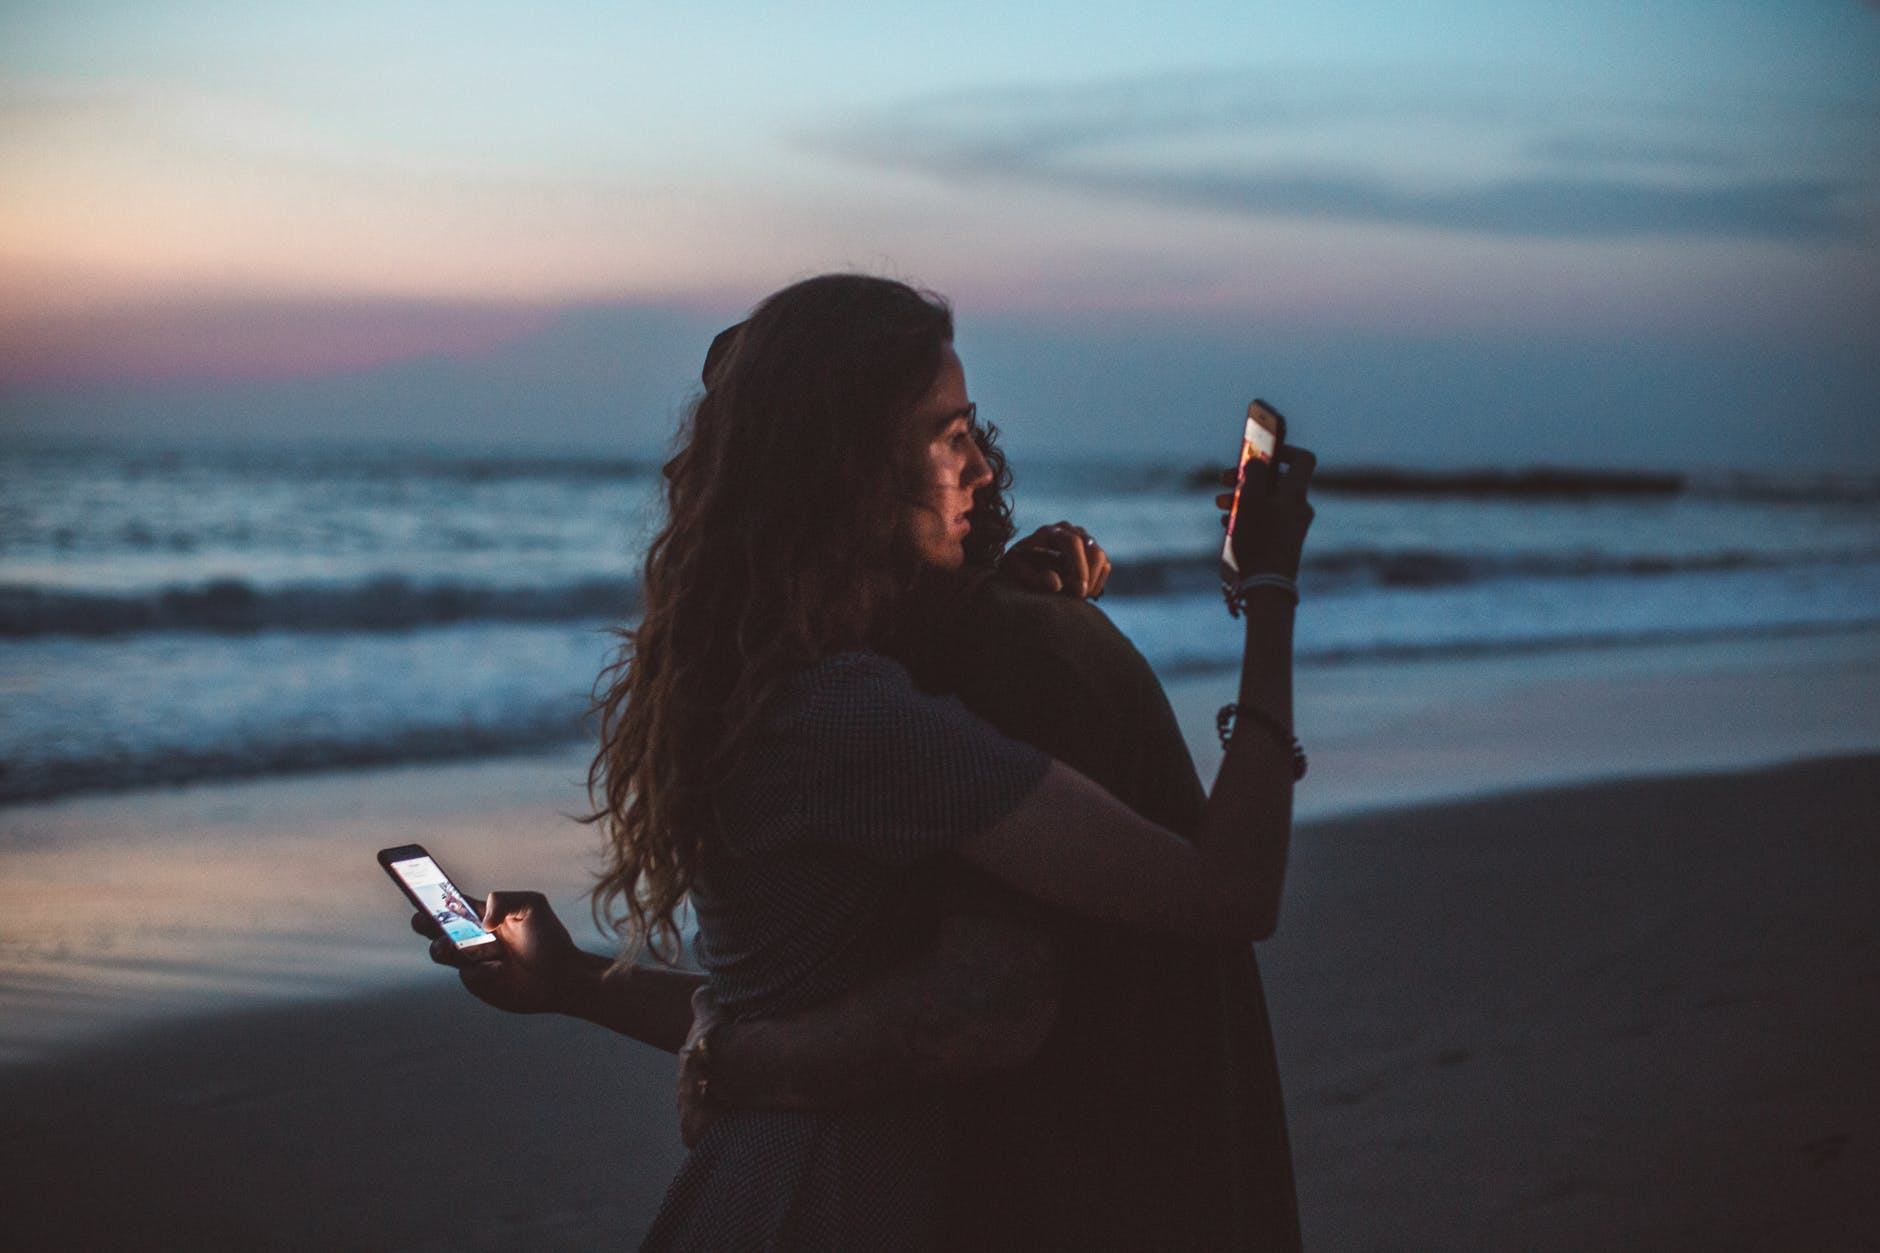 A couple hugging at the beach while staring at their phones